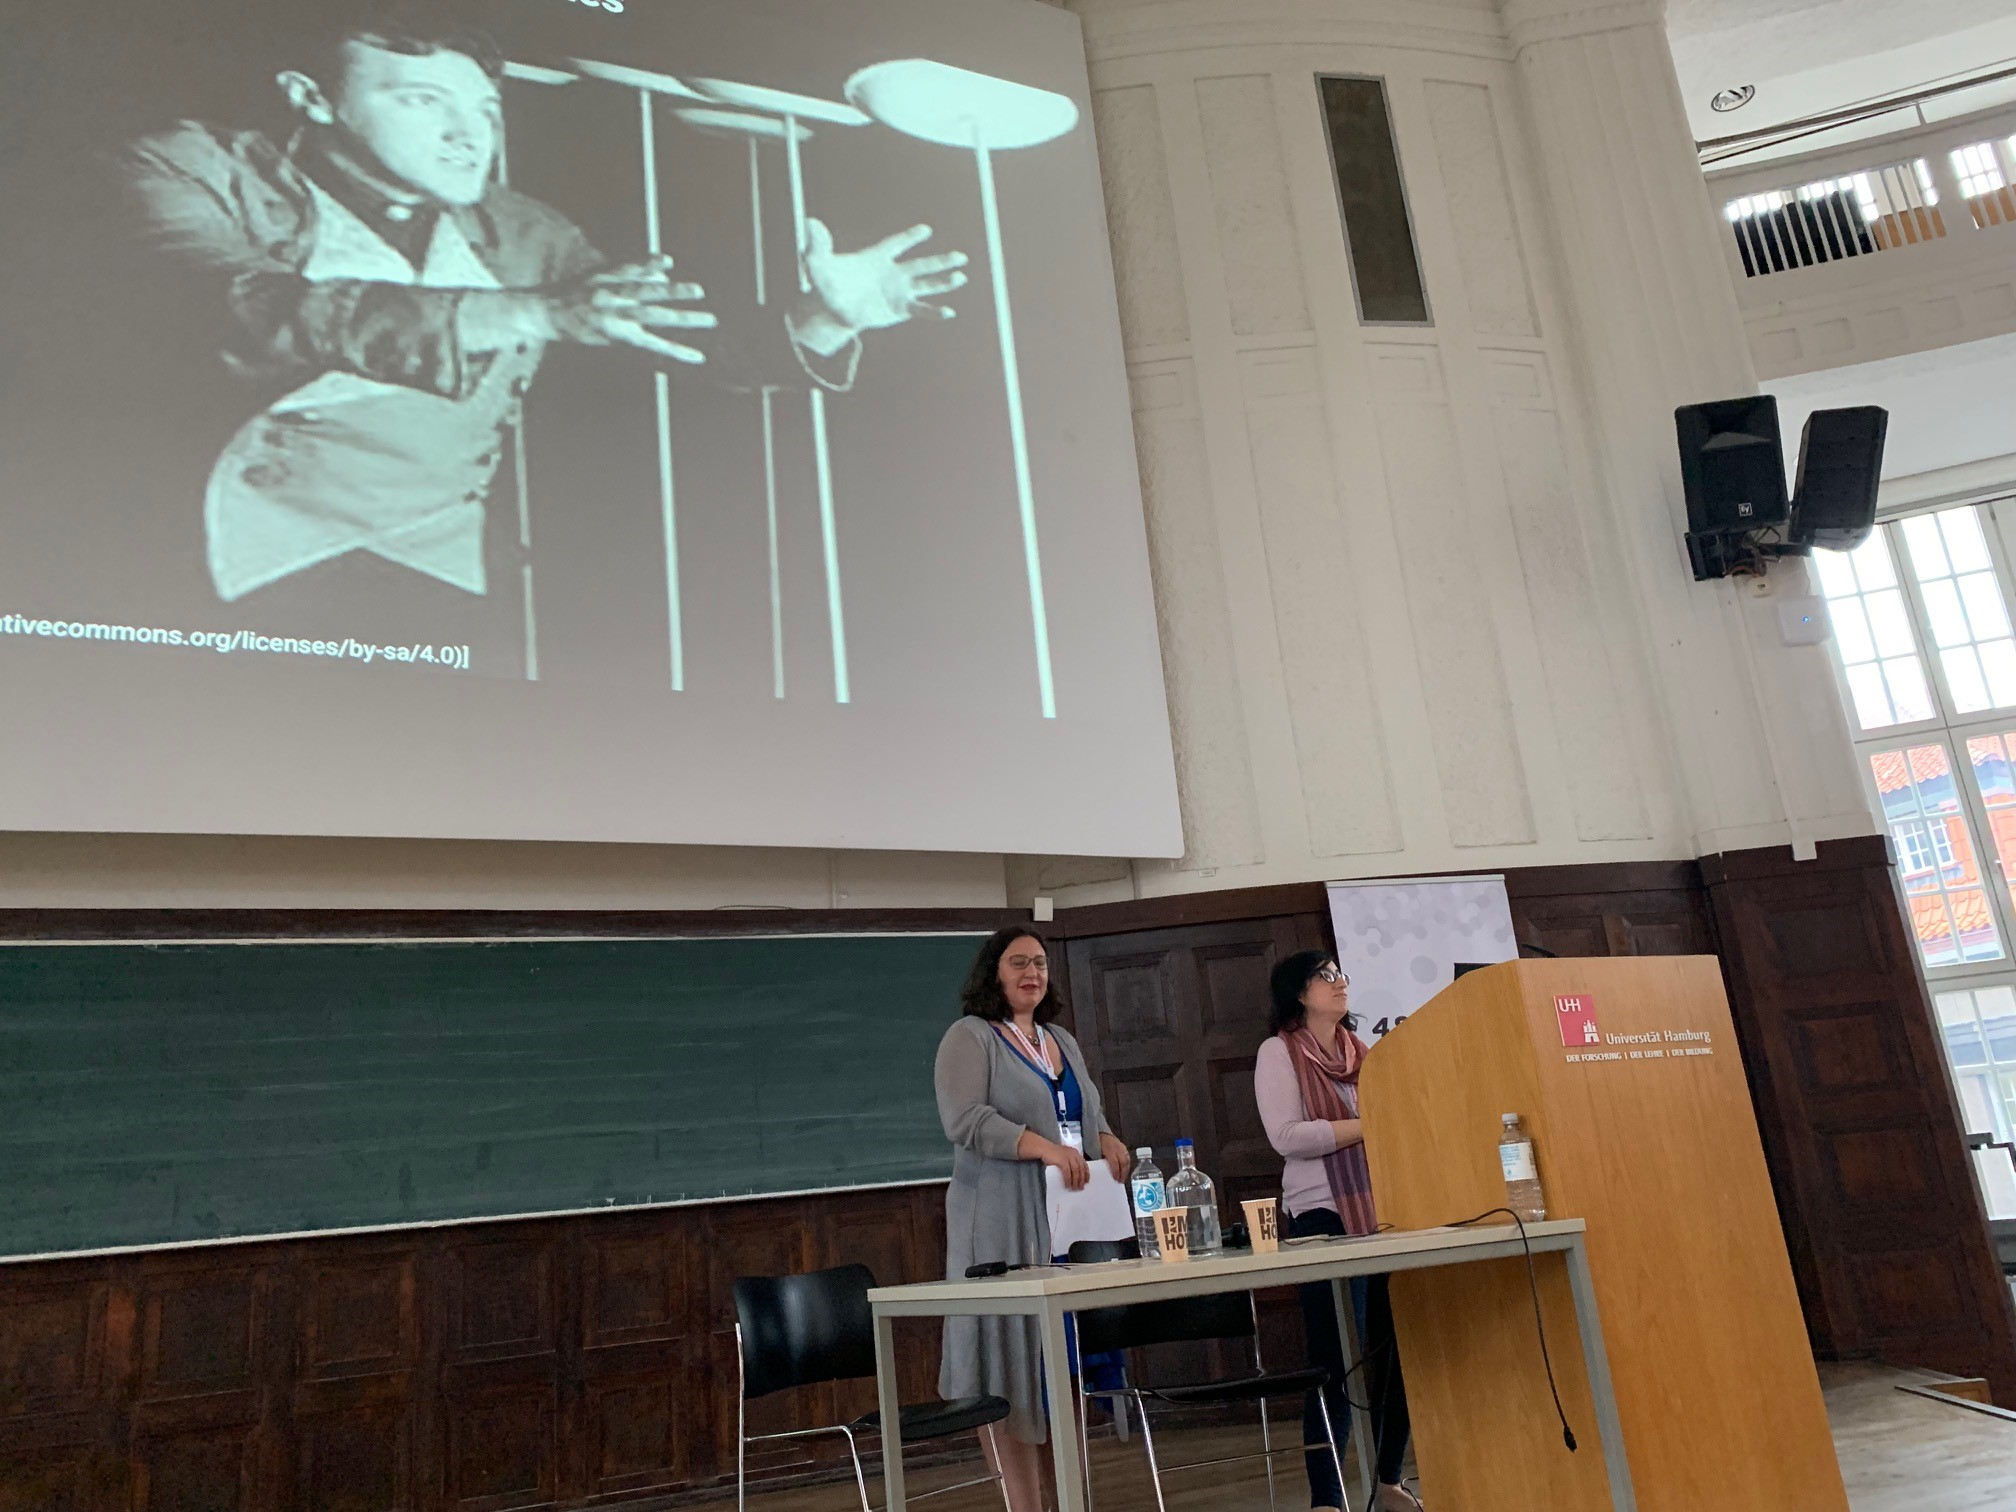 Image showing Monica Duke and Balviar Notay presenting at Open Repositories 2019